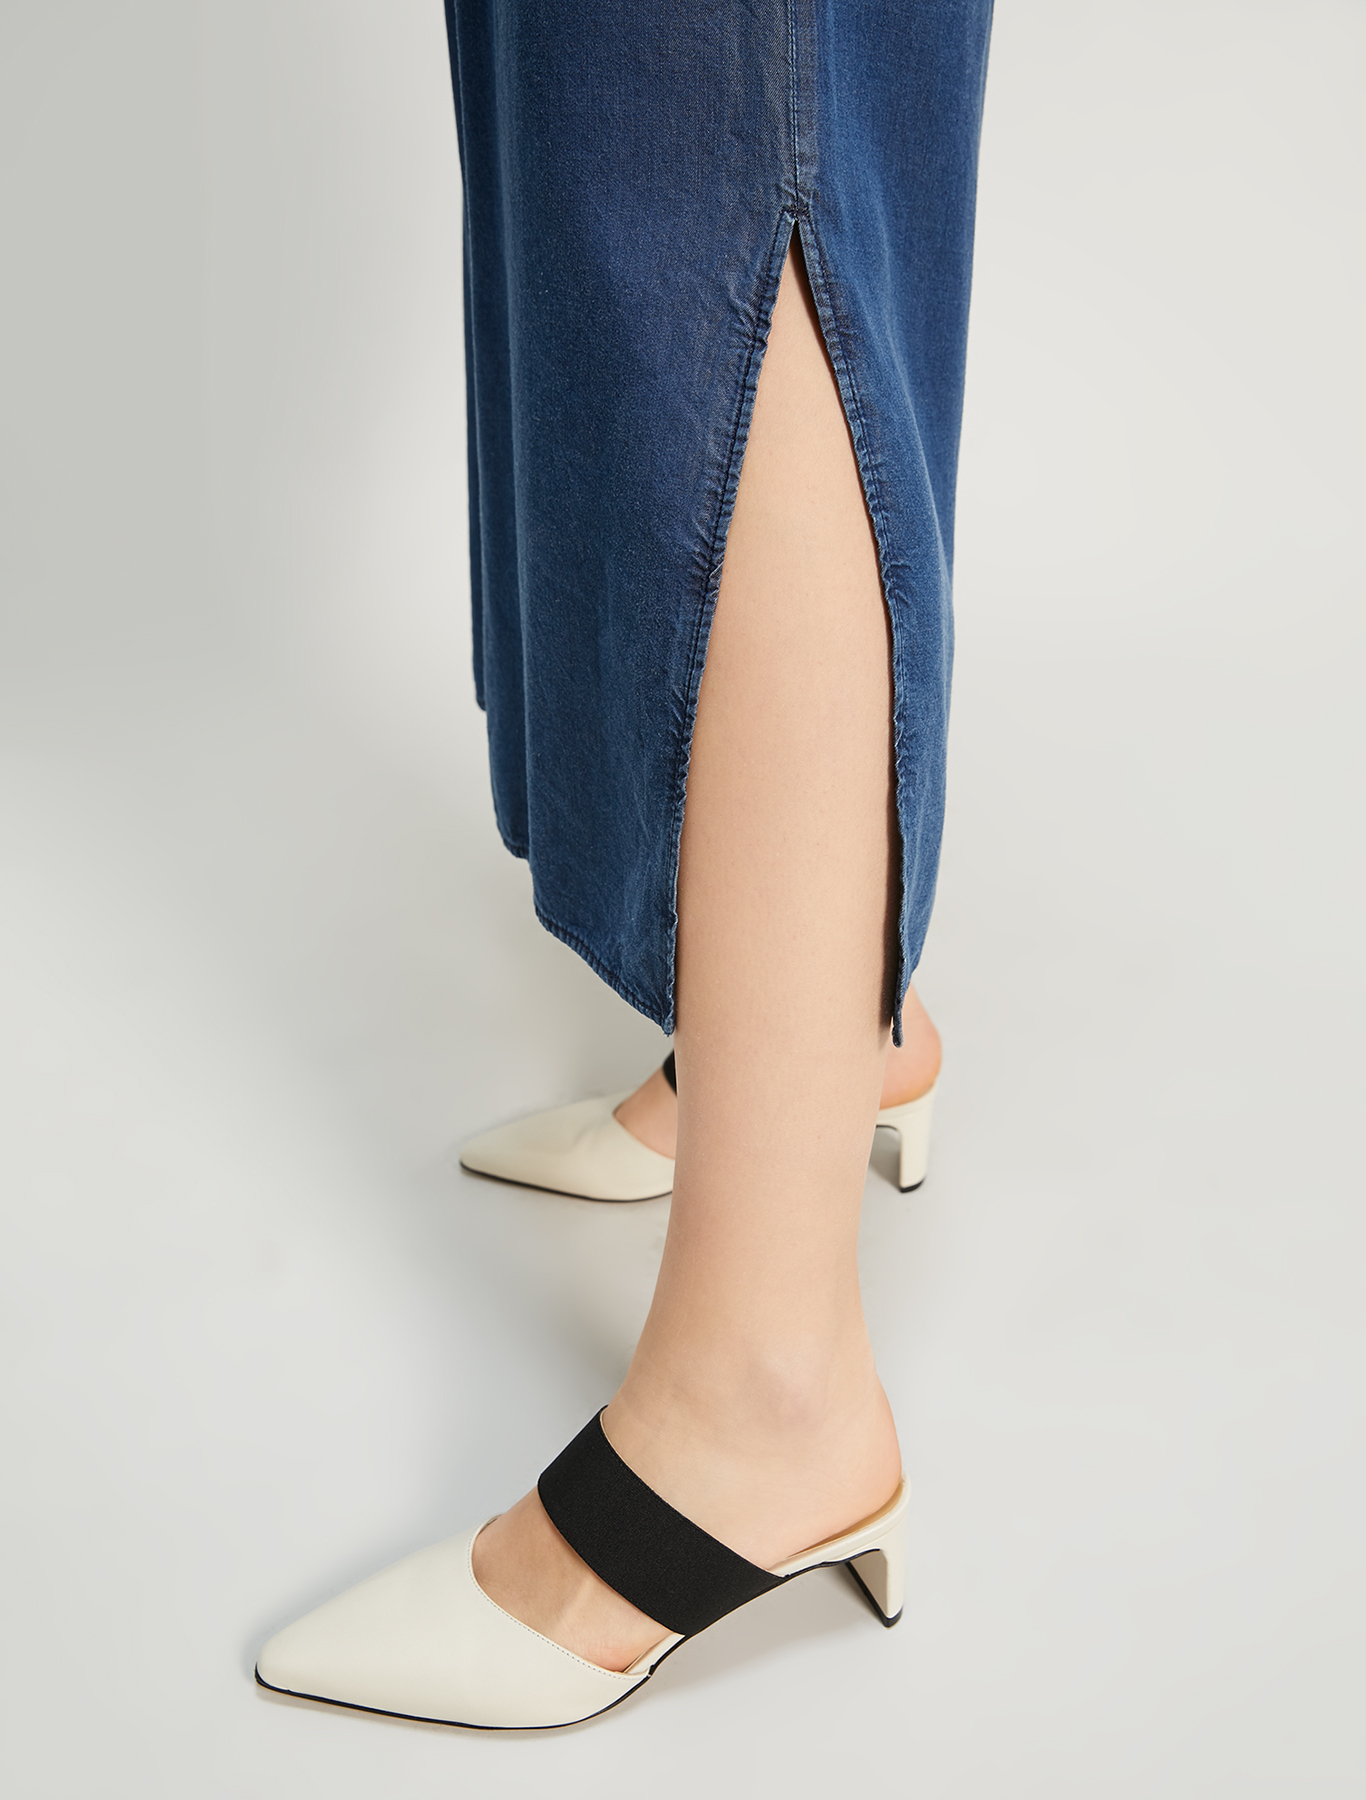 Wide, fluid jeans - navy blue - pennyblack